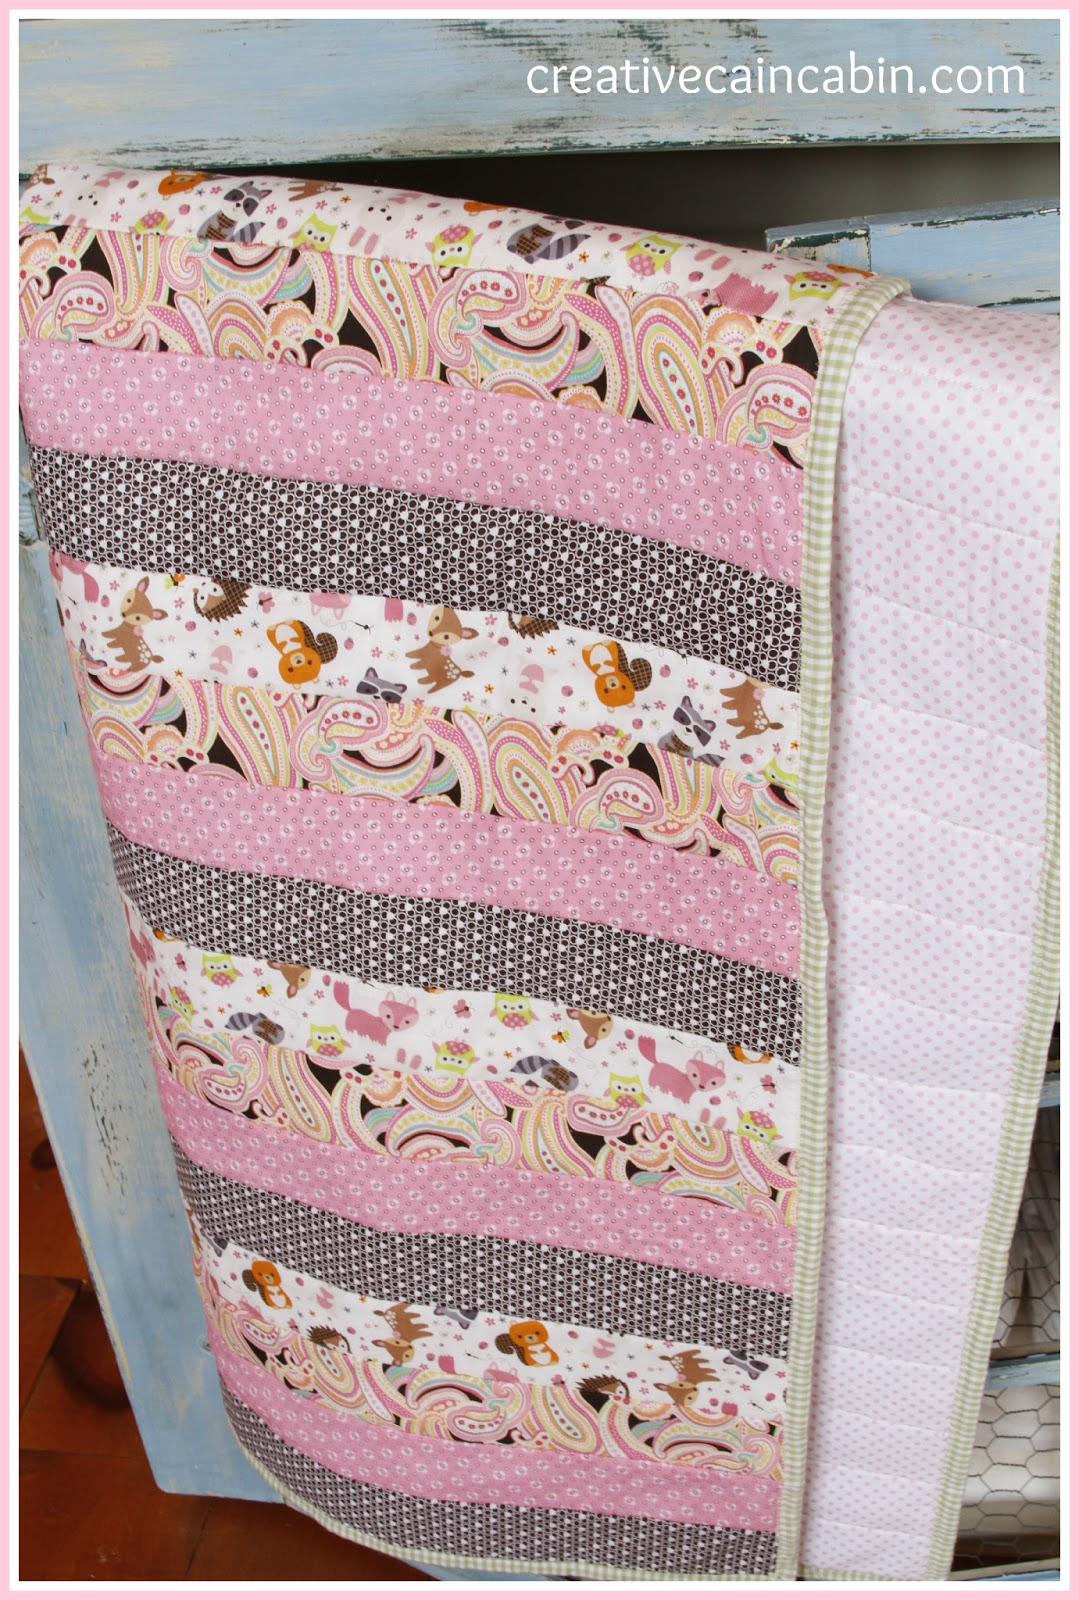 Baby Quilt using Quilt as You Go Method - CREATIVE CAIN CABIN : quilt as you go baby quilt - Adamdwight.com